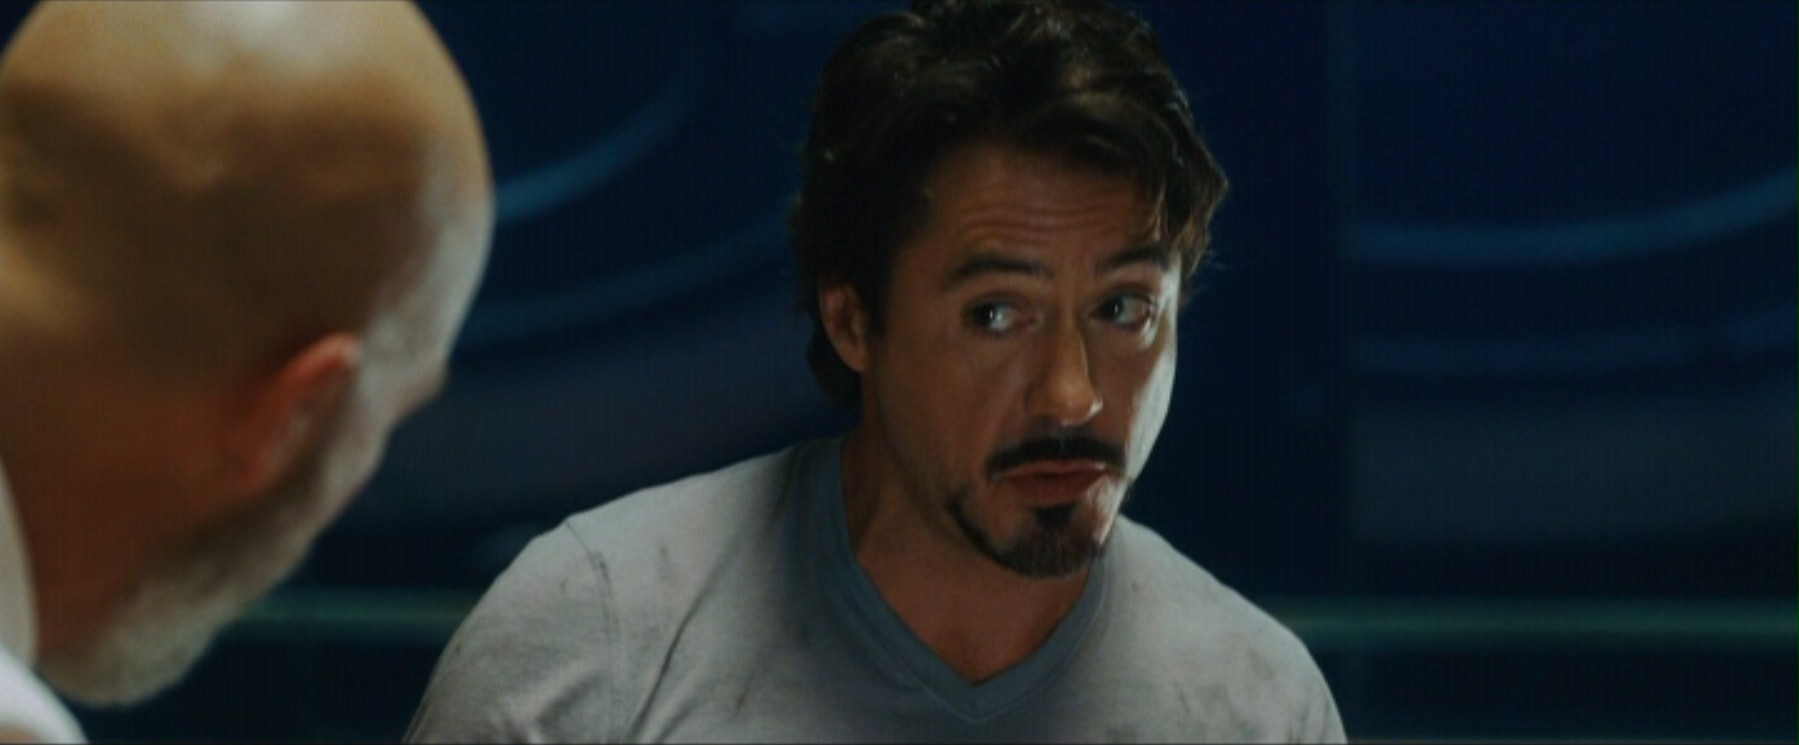 tony stark images hd - photo #7